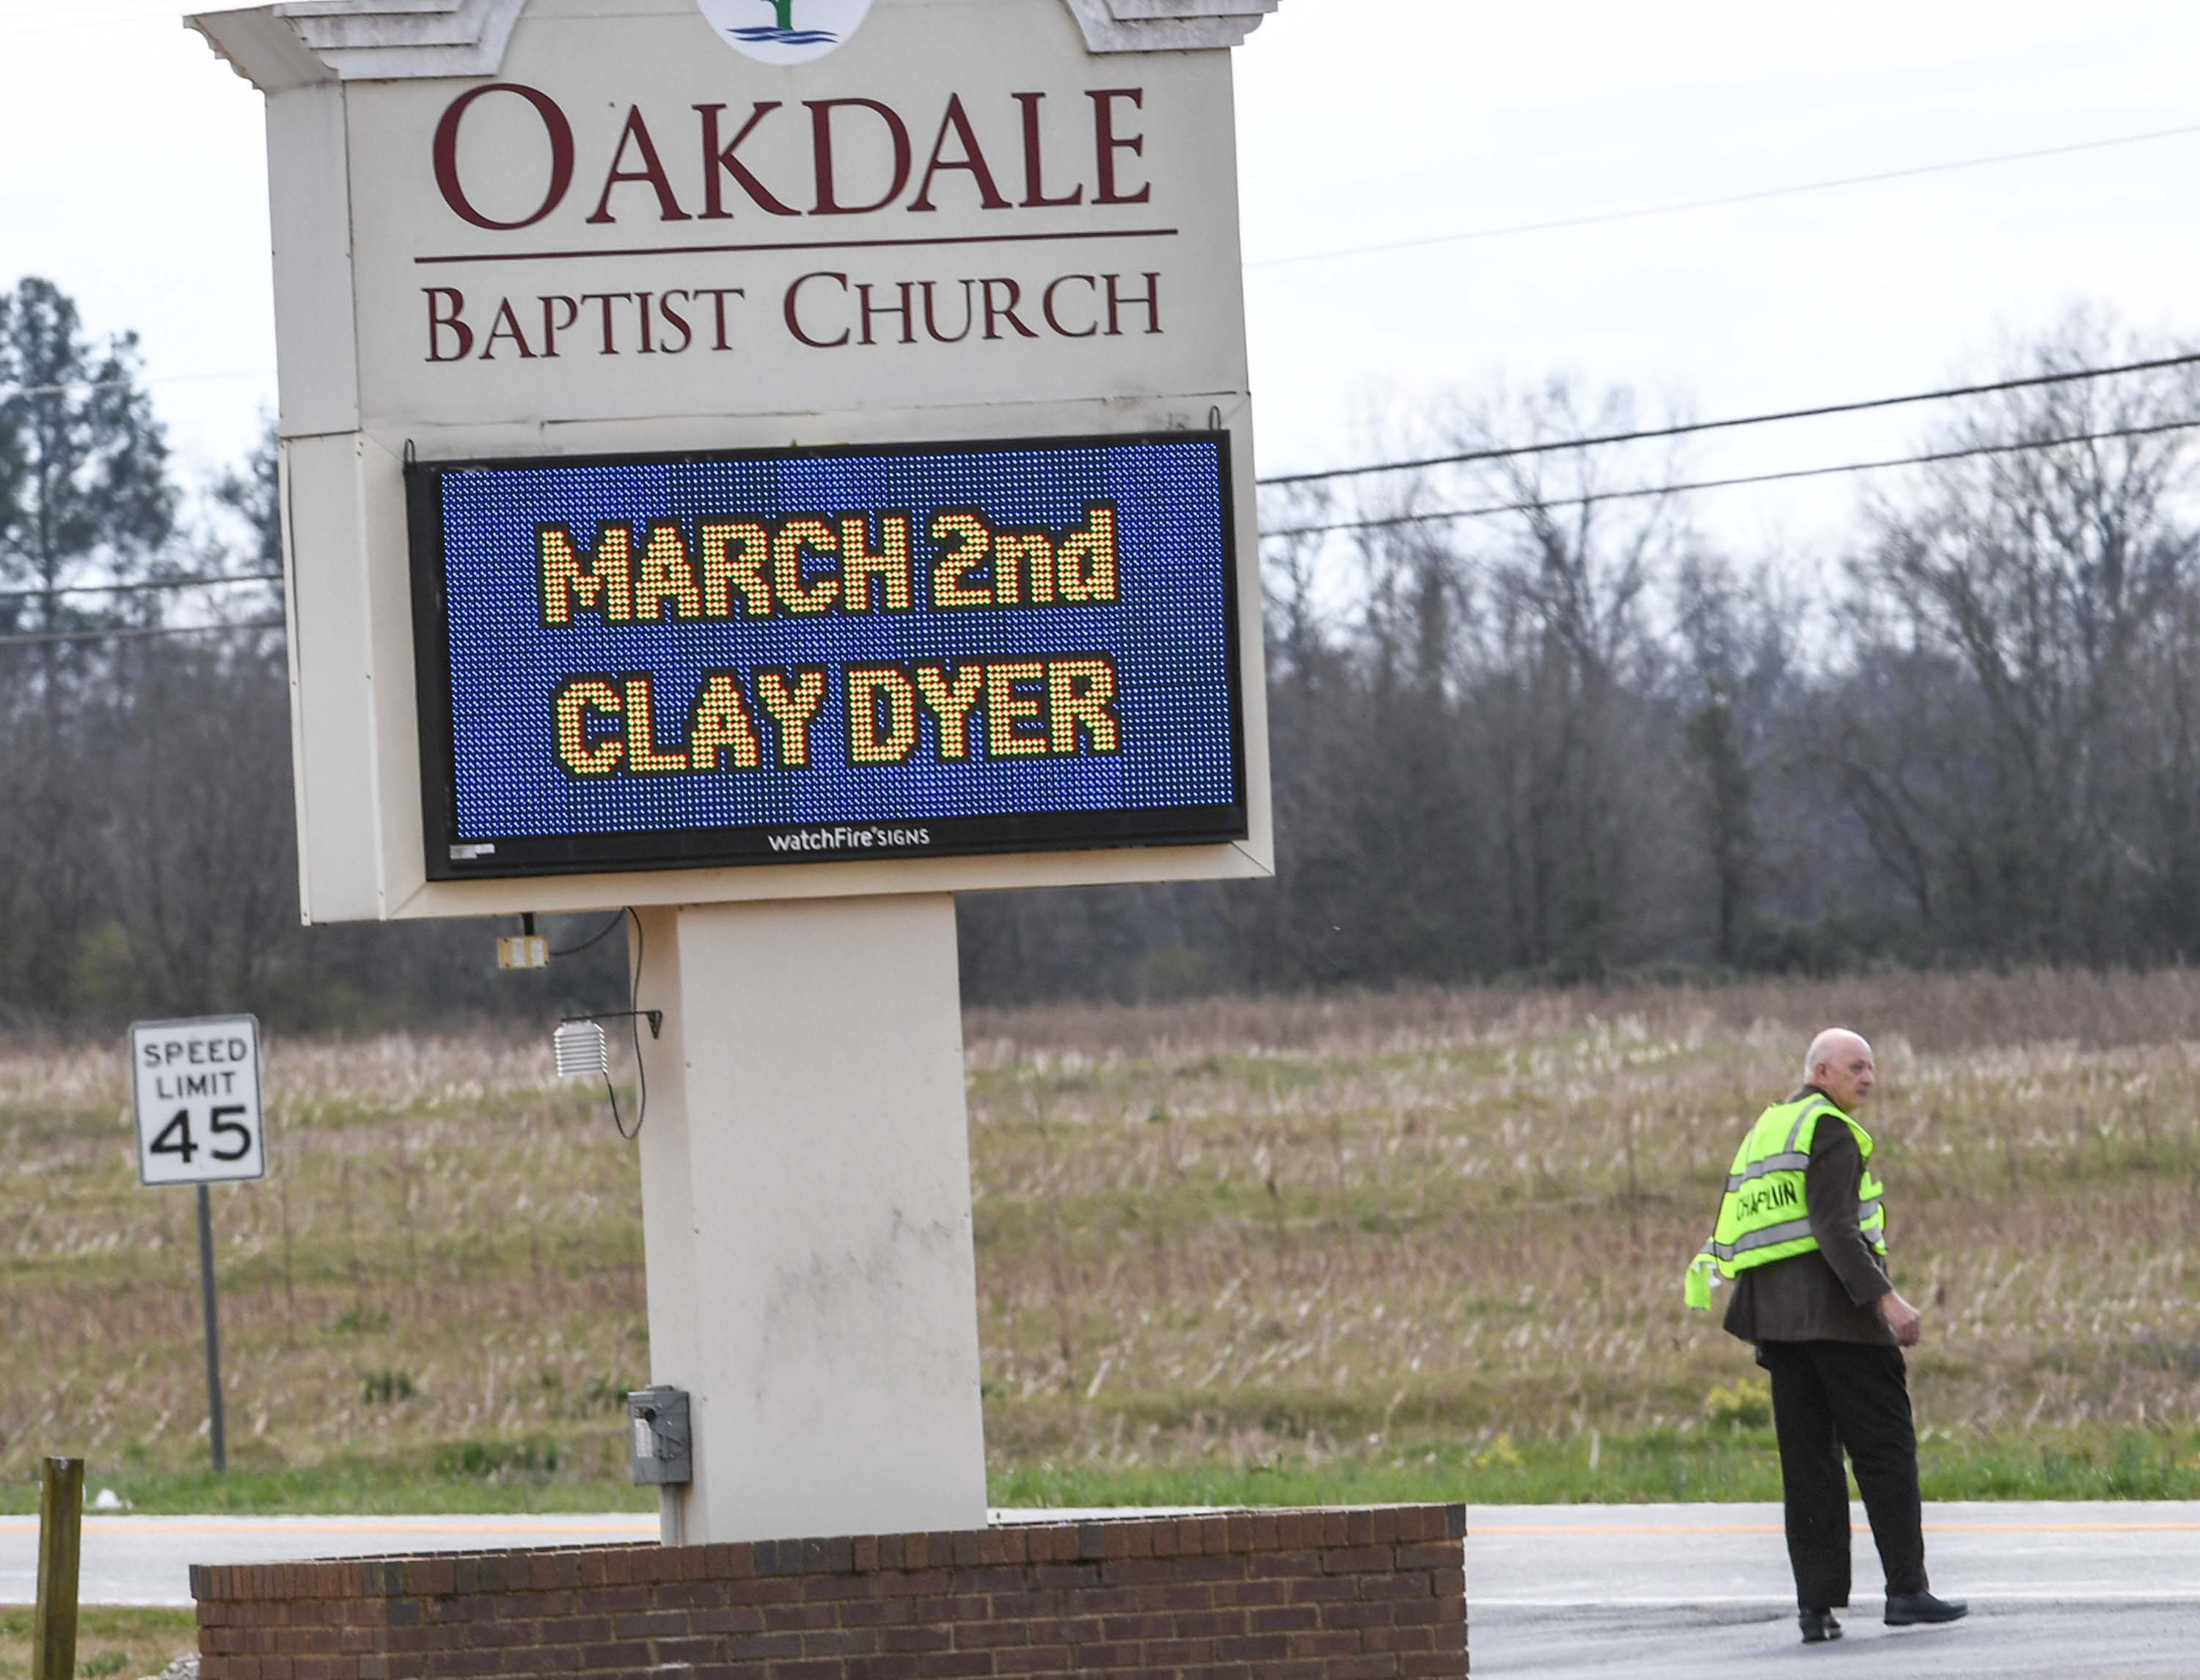 A man with a chaplain vest helps direct traffic at the scene of a three-car accident on state highway 24 just below Townville in front of Oakdale Baptist Church Tuesday.